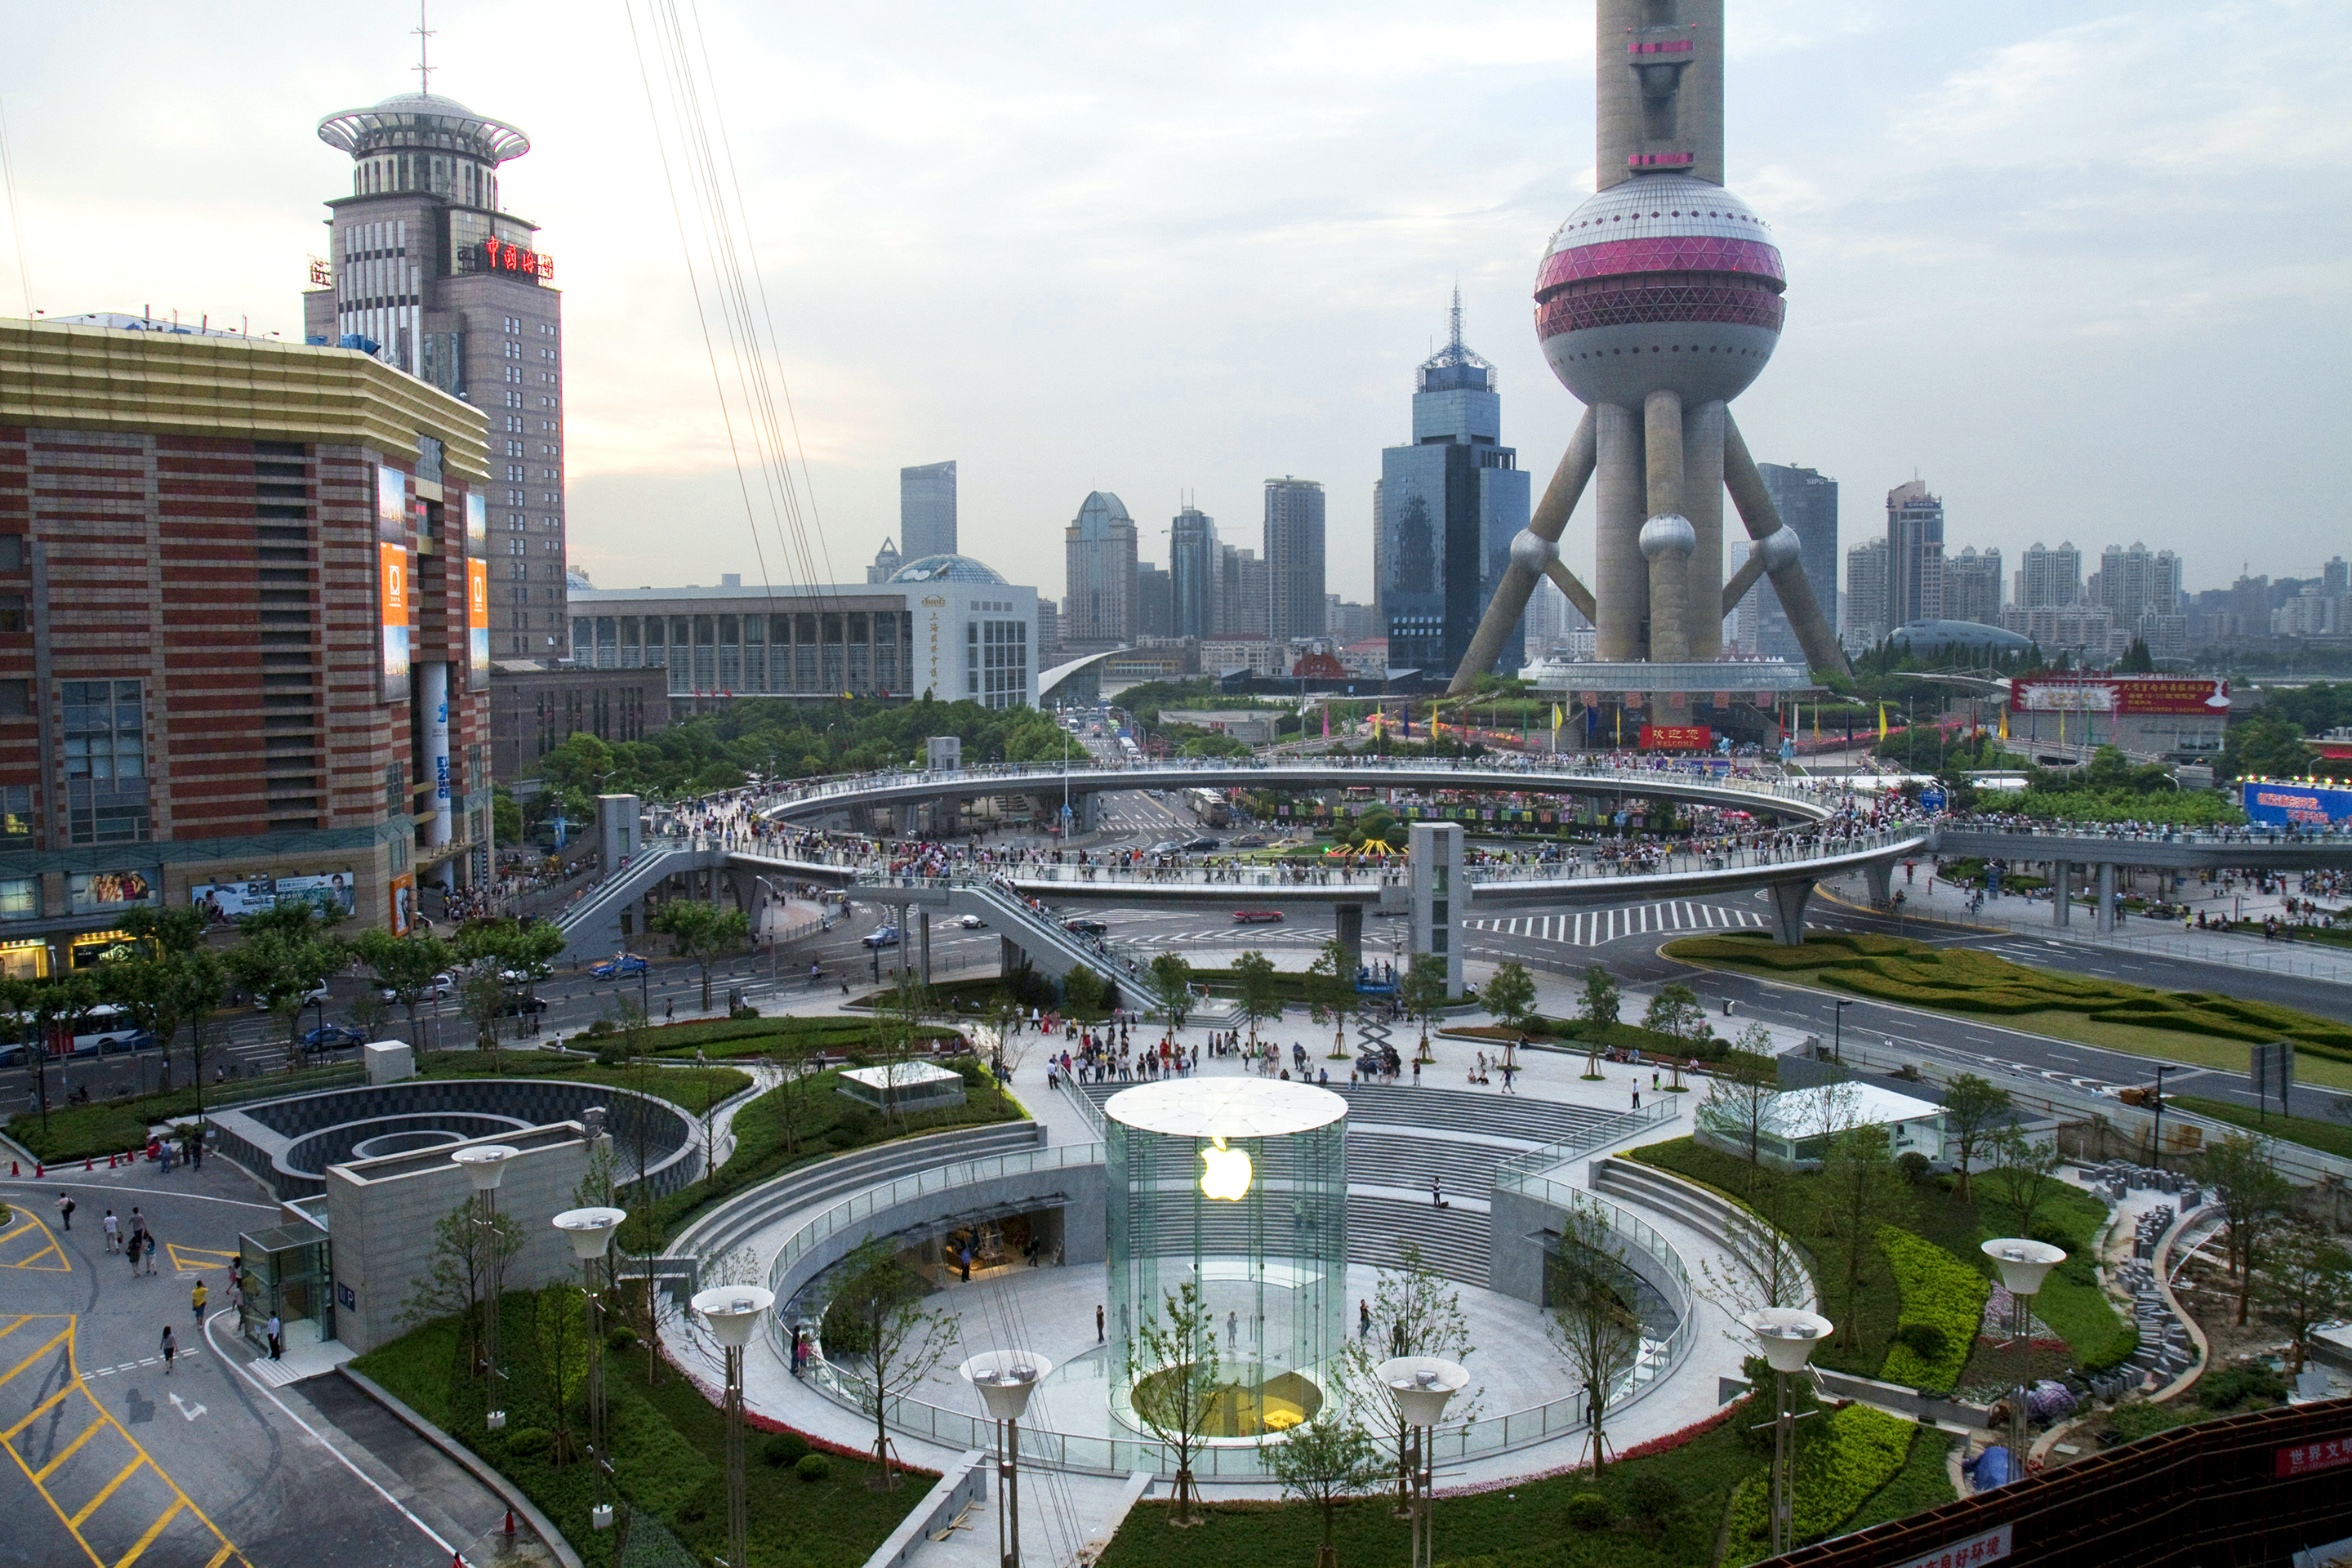 Apple's new flagship store stands in front of the Oriental Pearl Tower in Shanghai.